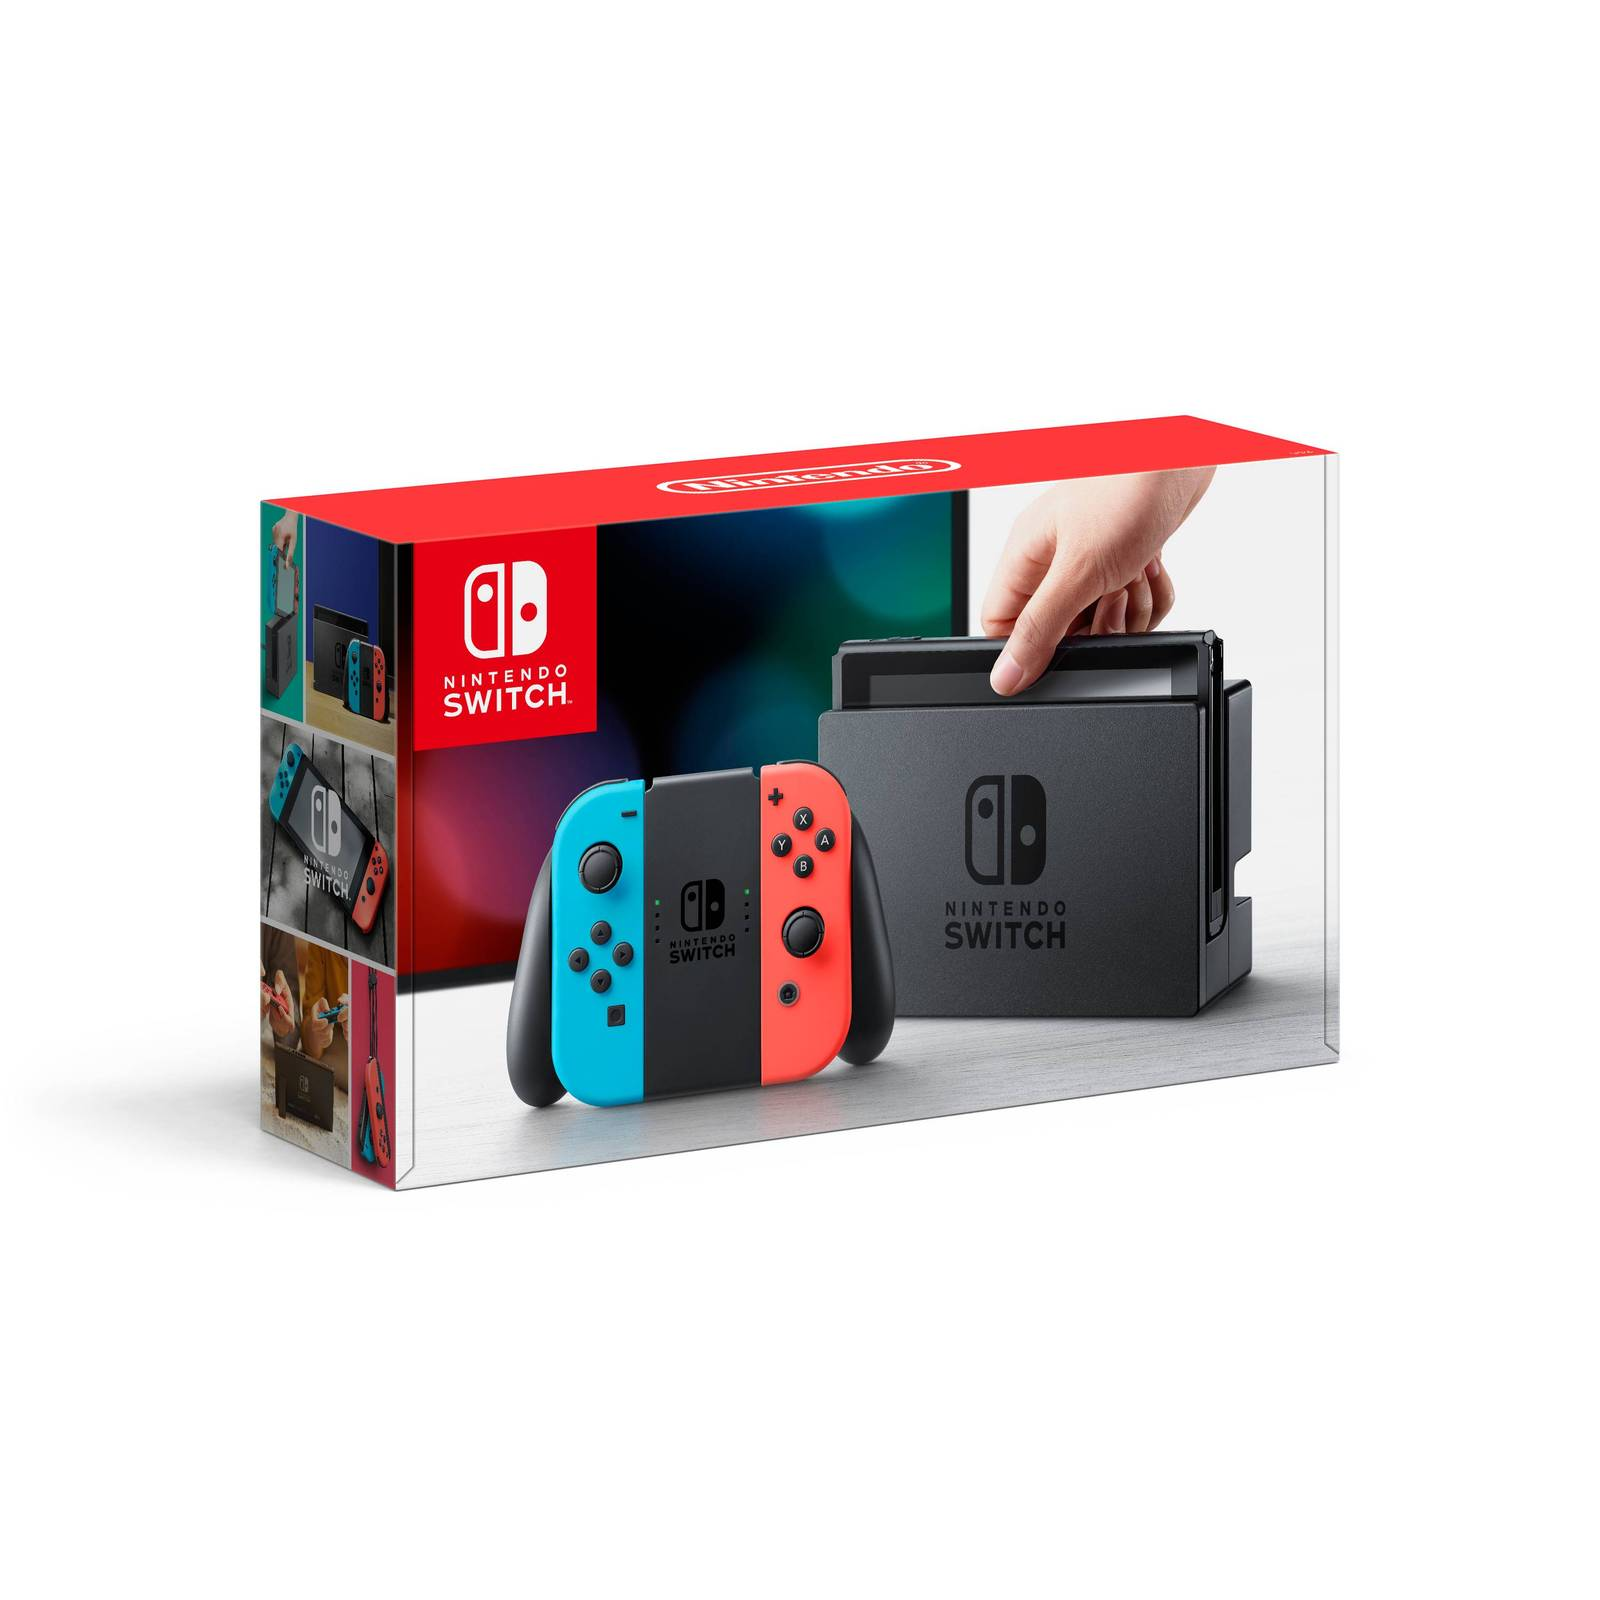 Nintendo Switch Console System NEON Blue / Red Version + Joy-Con Region Free USA